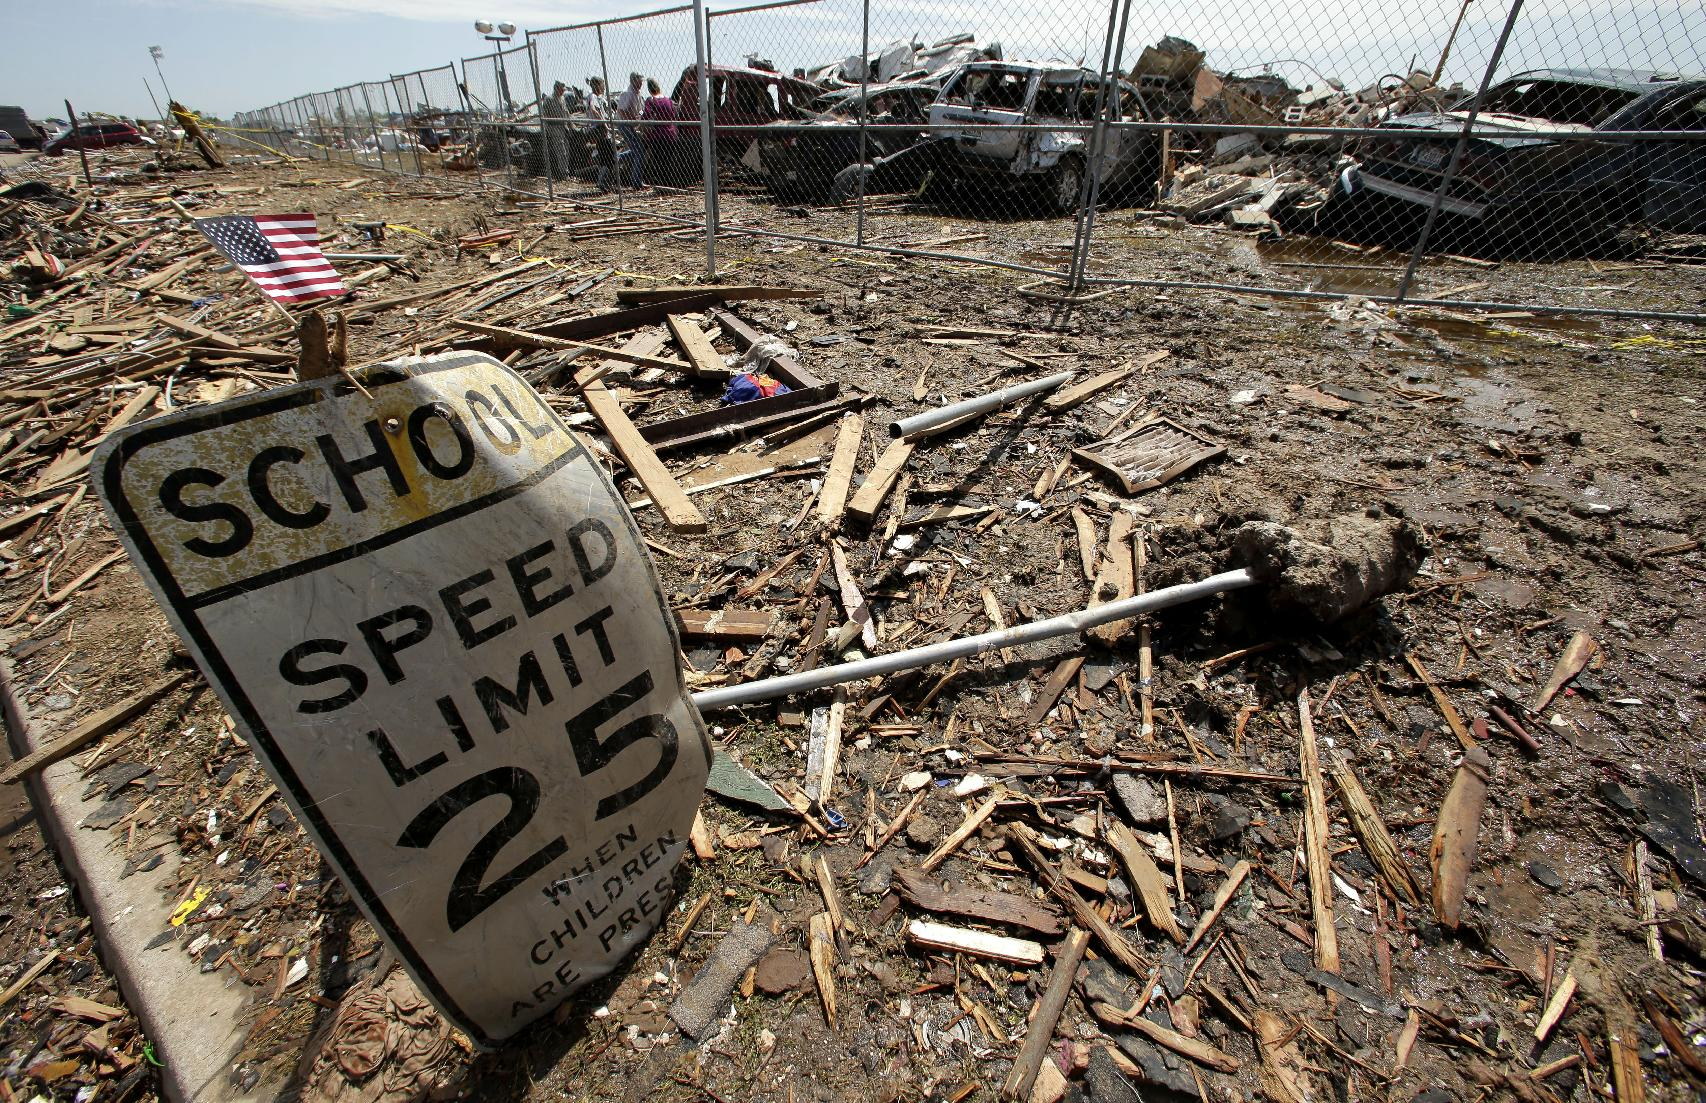 A battered sign stands outside the wreckage of Plaza Towers Elementary School in Moore, Okla. (Charlie Riedel/AP)